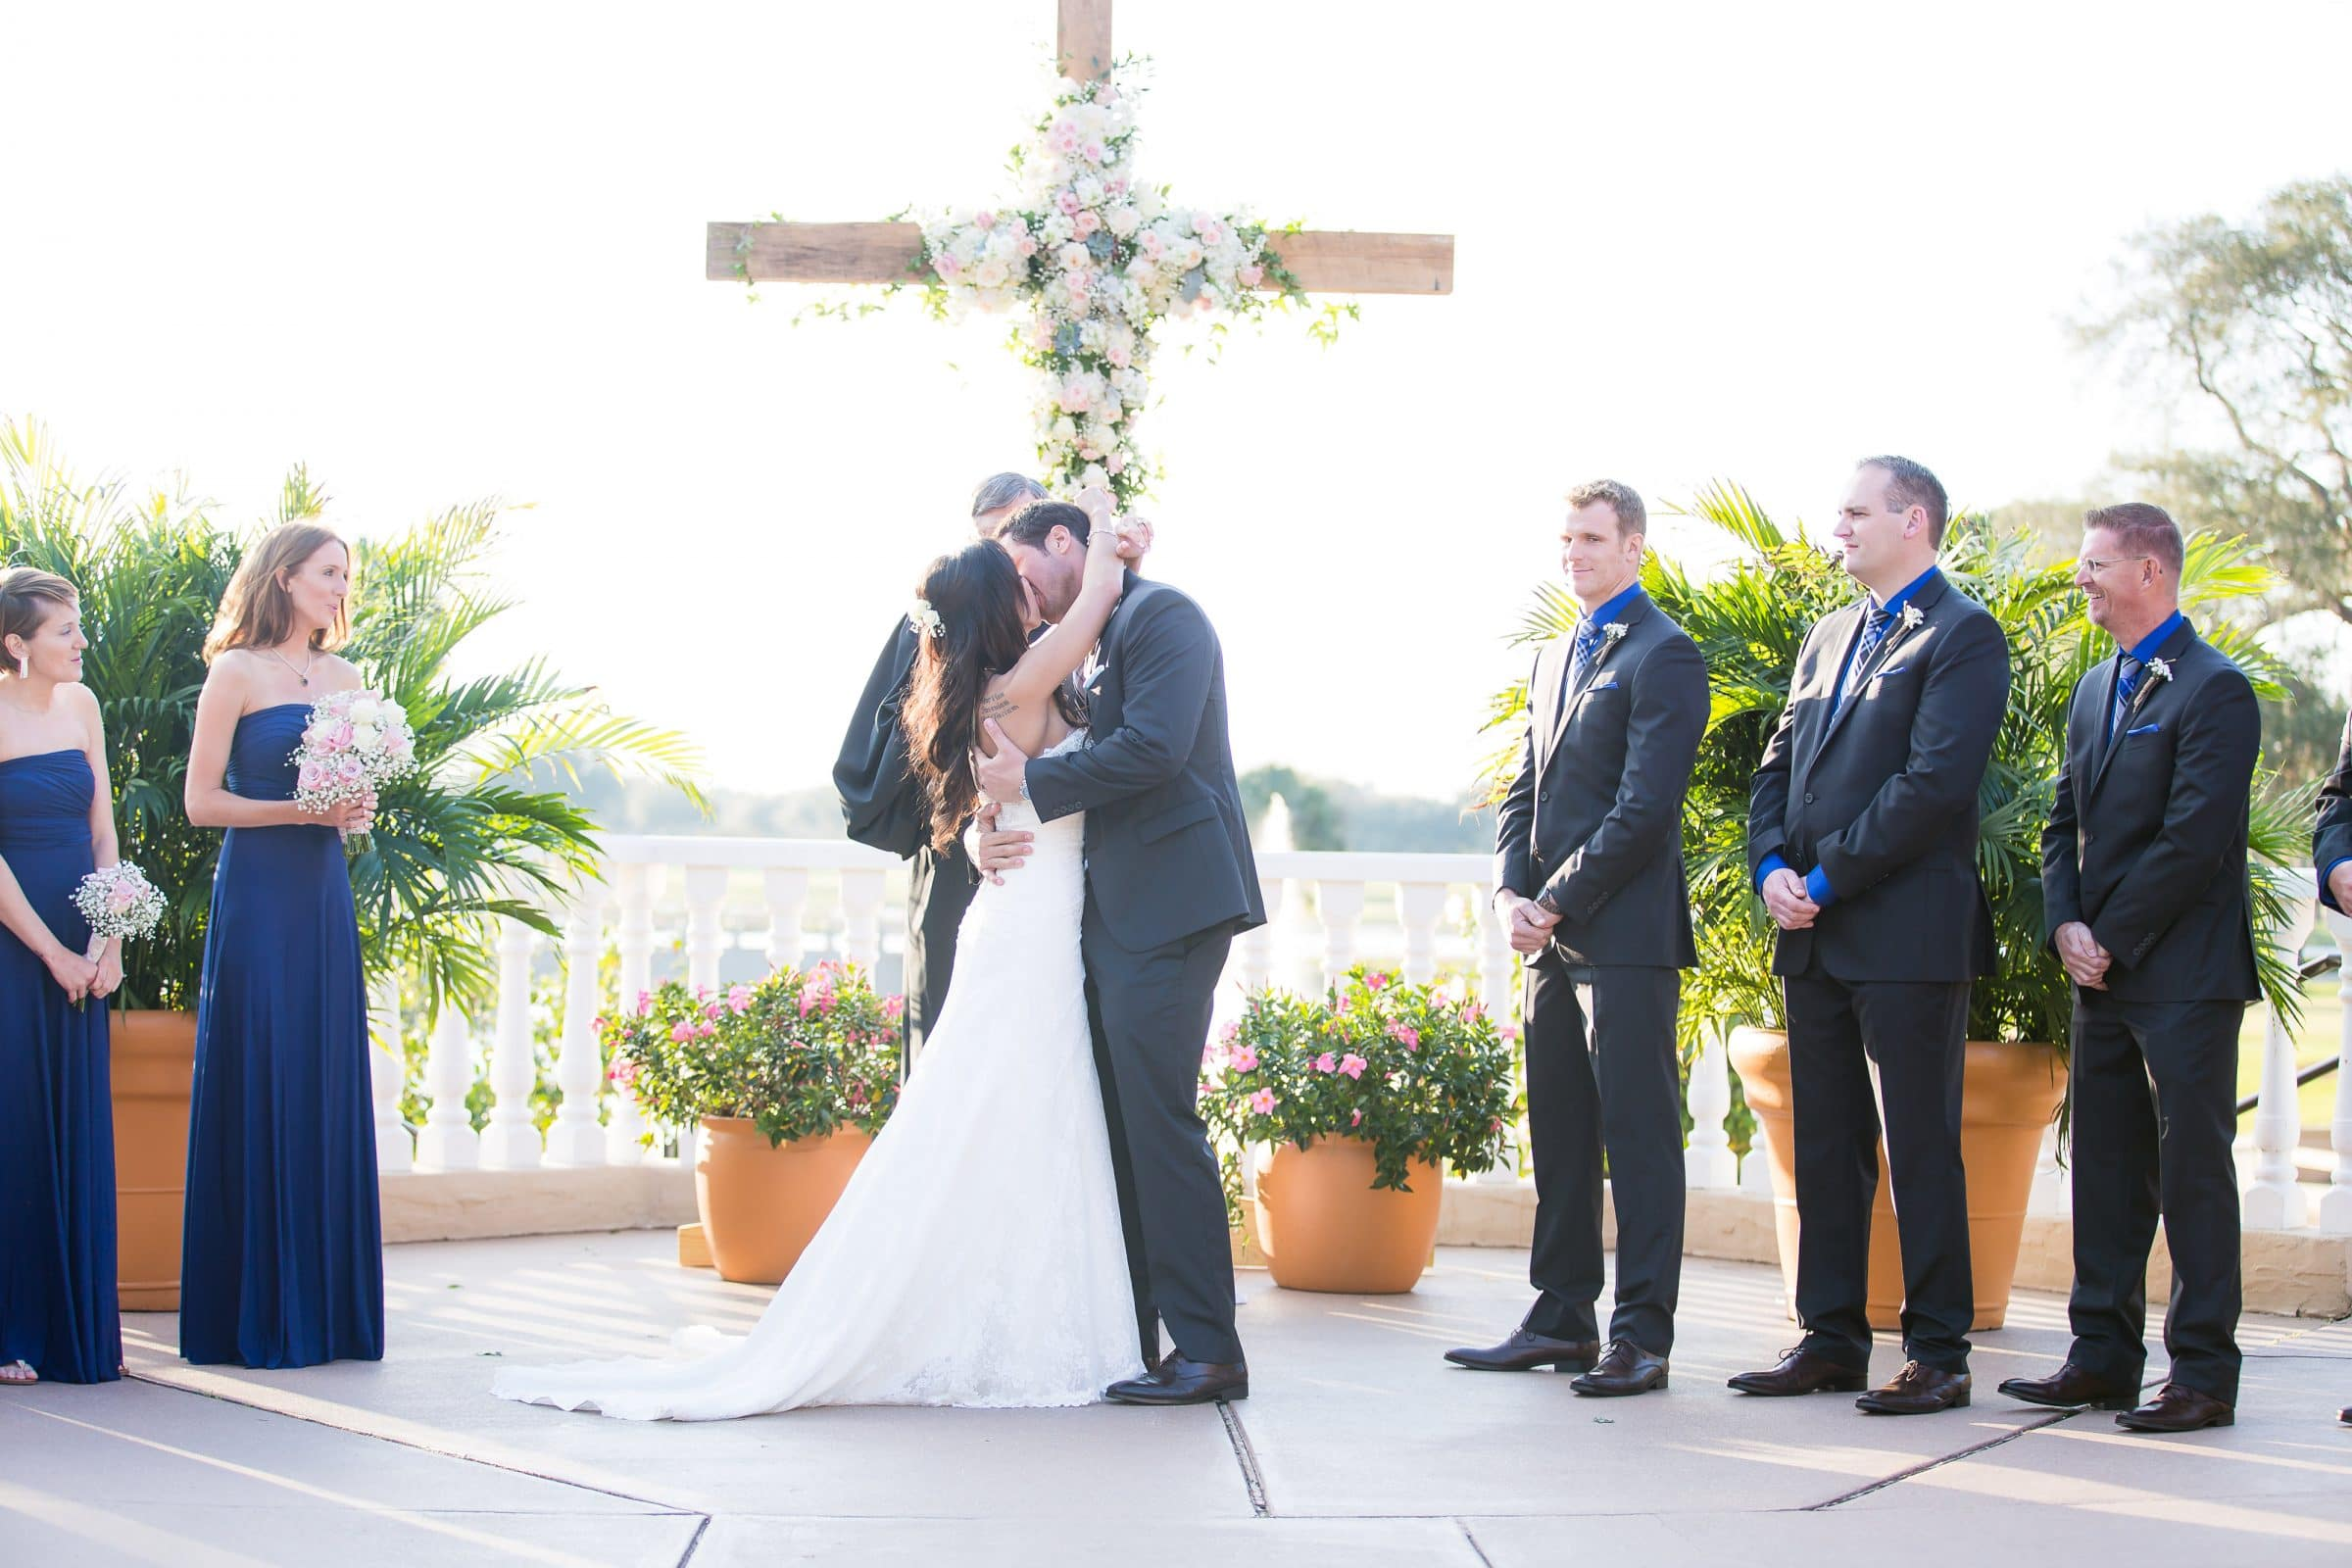 Bride and groom kiss in front of giant wooden cross decorated with flowers